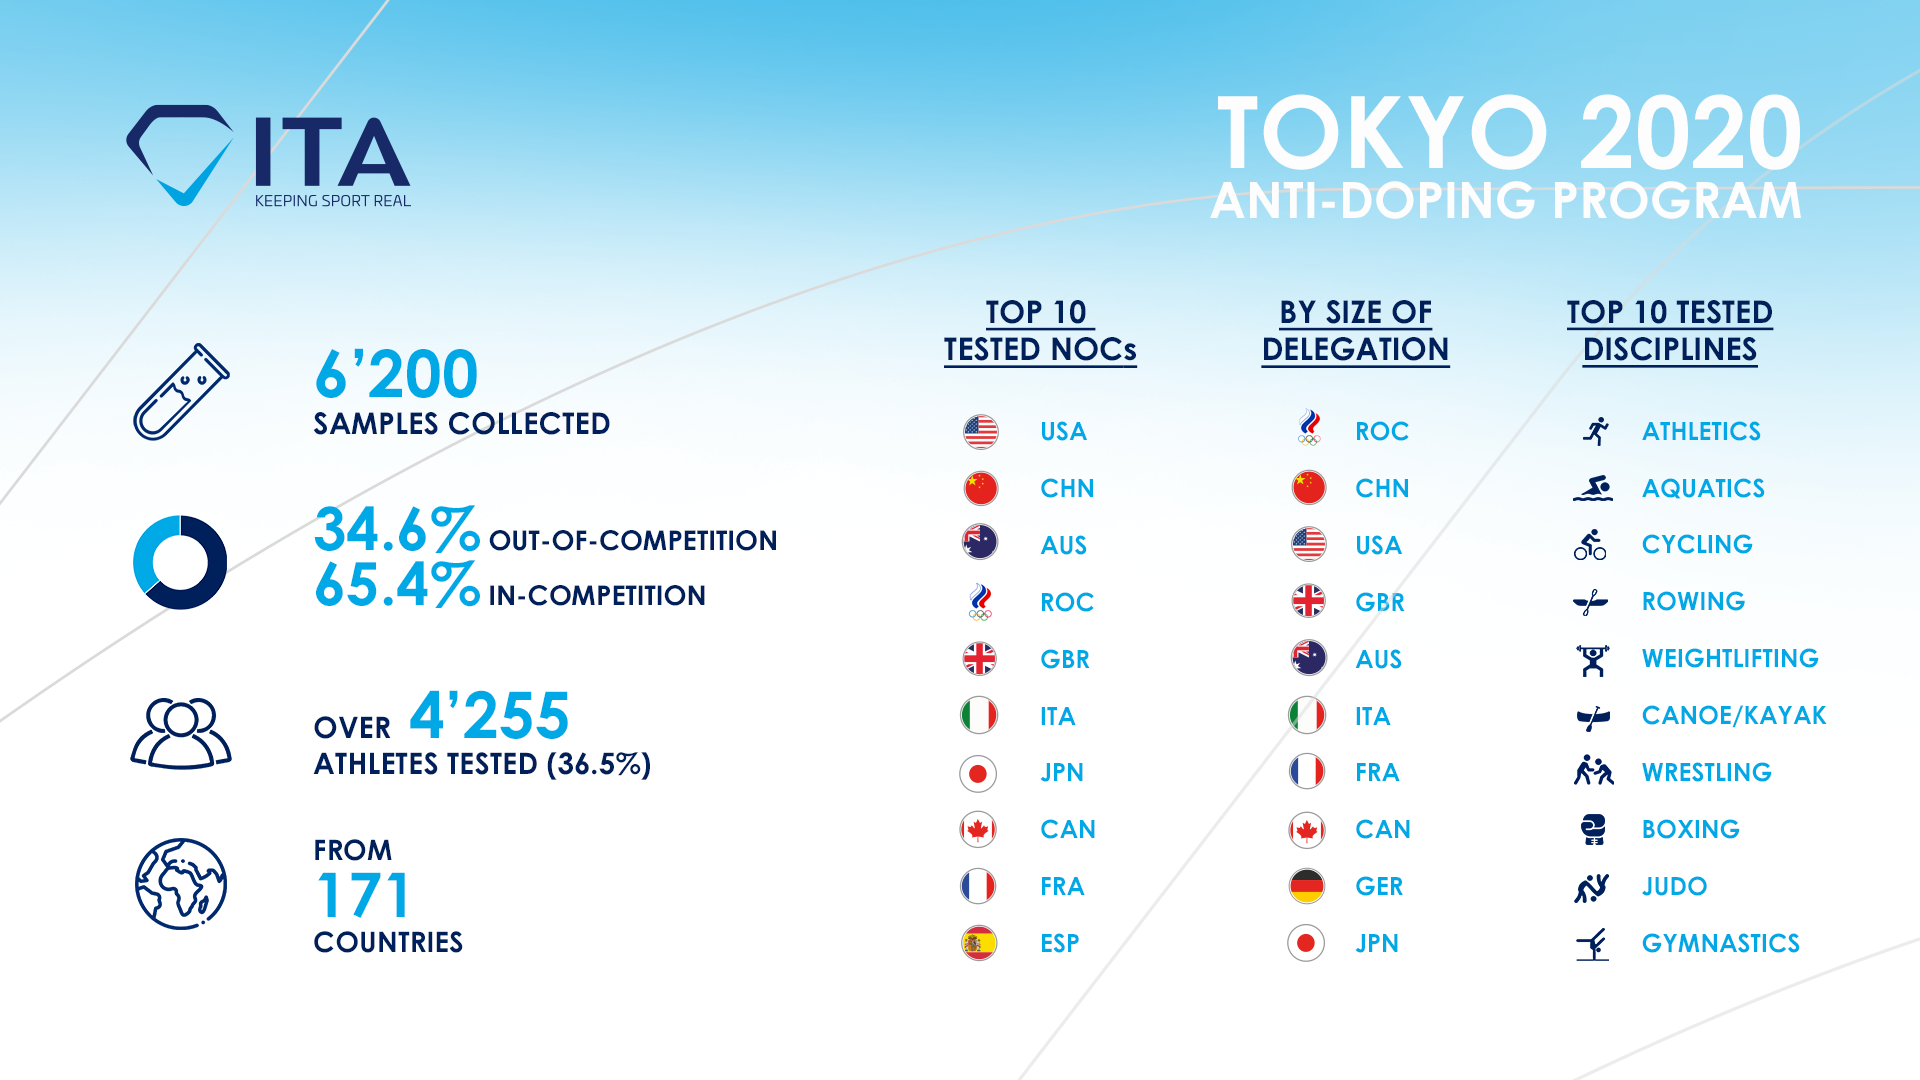 Tokyo 2020: ITA succeeded in fully implementing anti-doping program for Olympic Games despite challenging COVID-19 circumstances